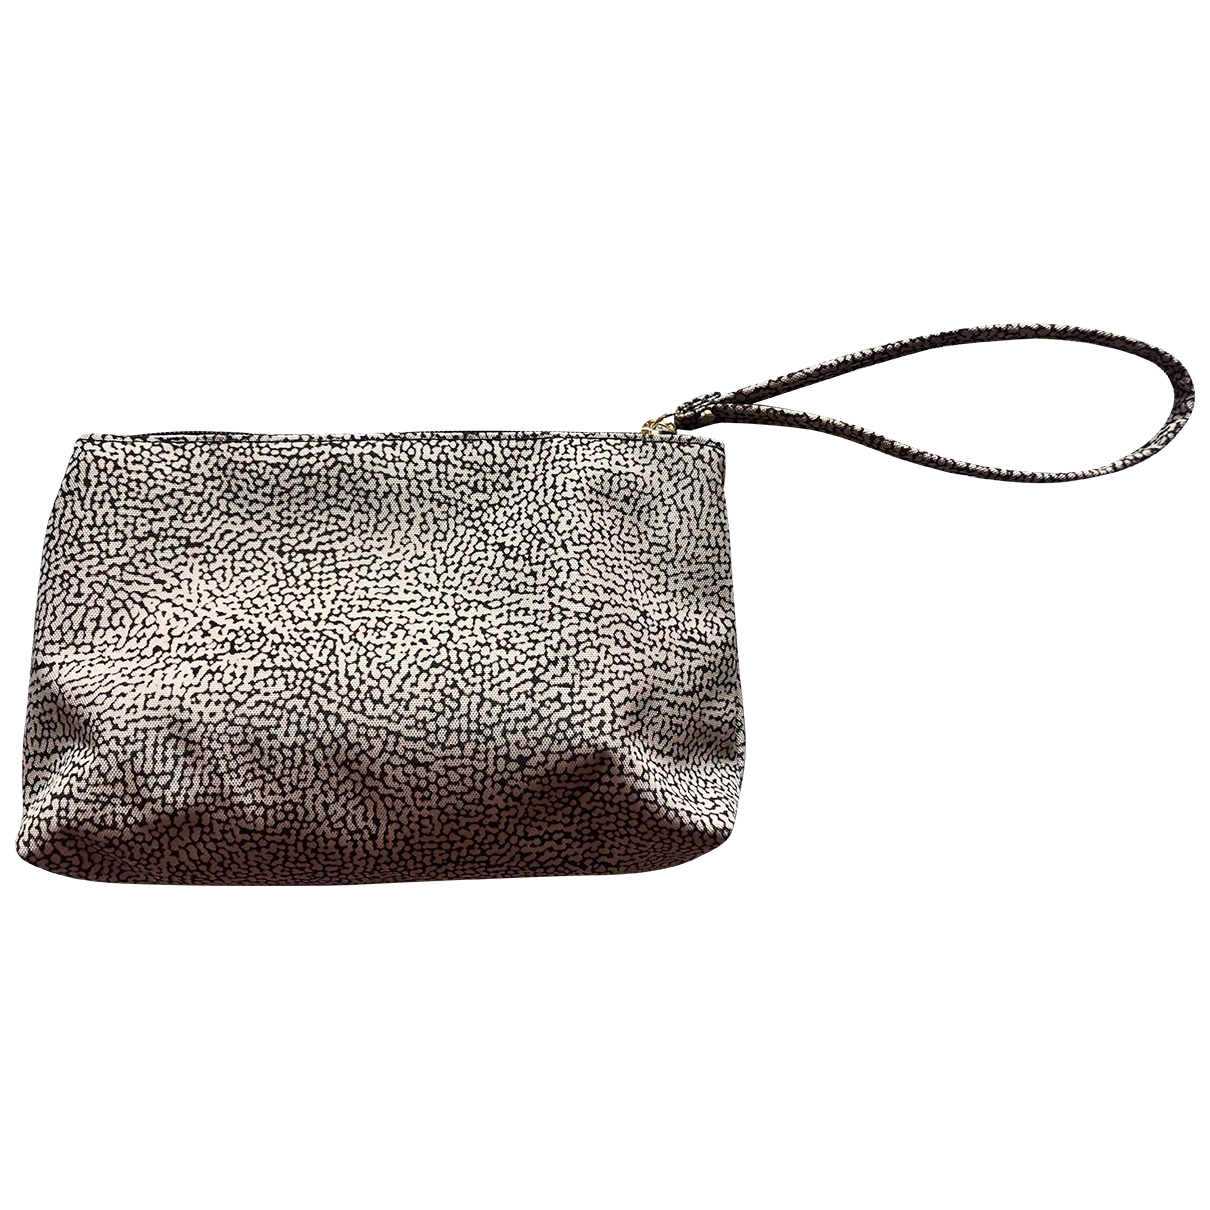 Non Signé / Unsigned \N Beige Cloth Clutch bag for Women \N